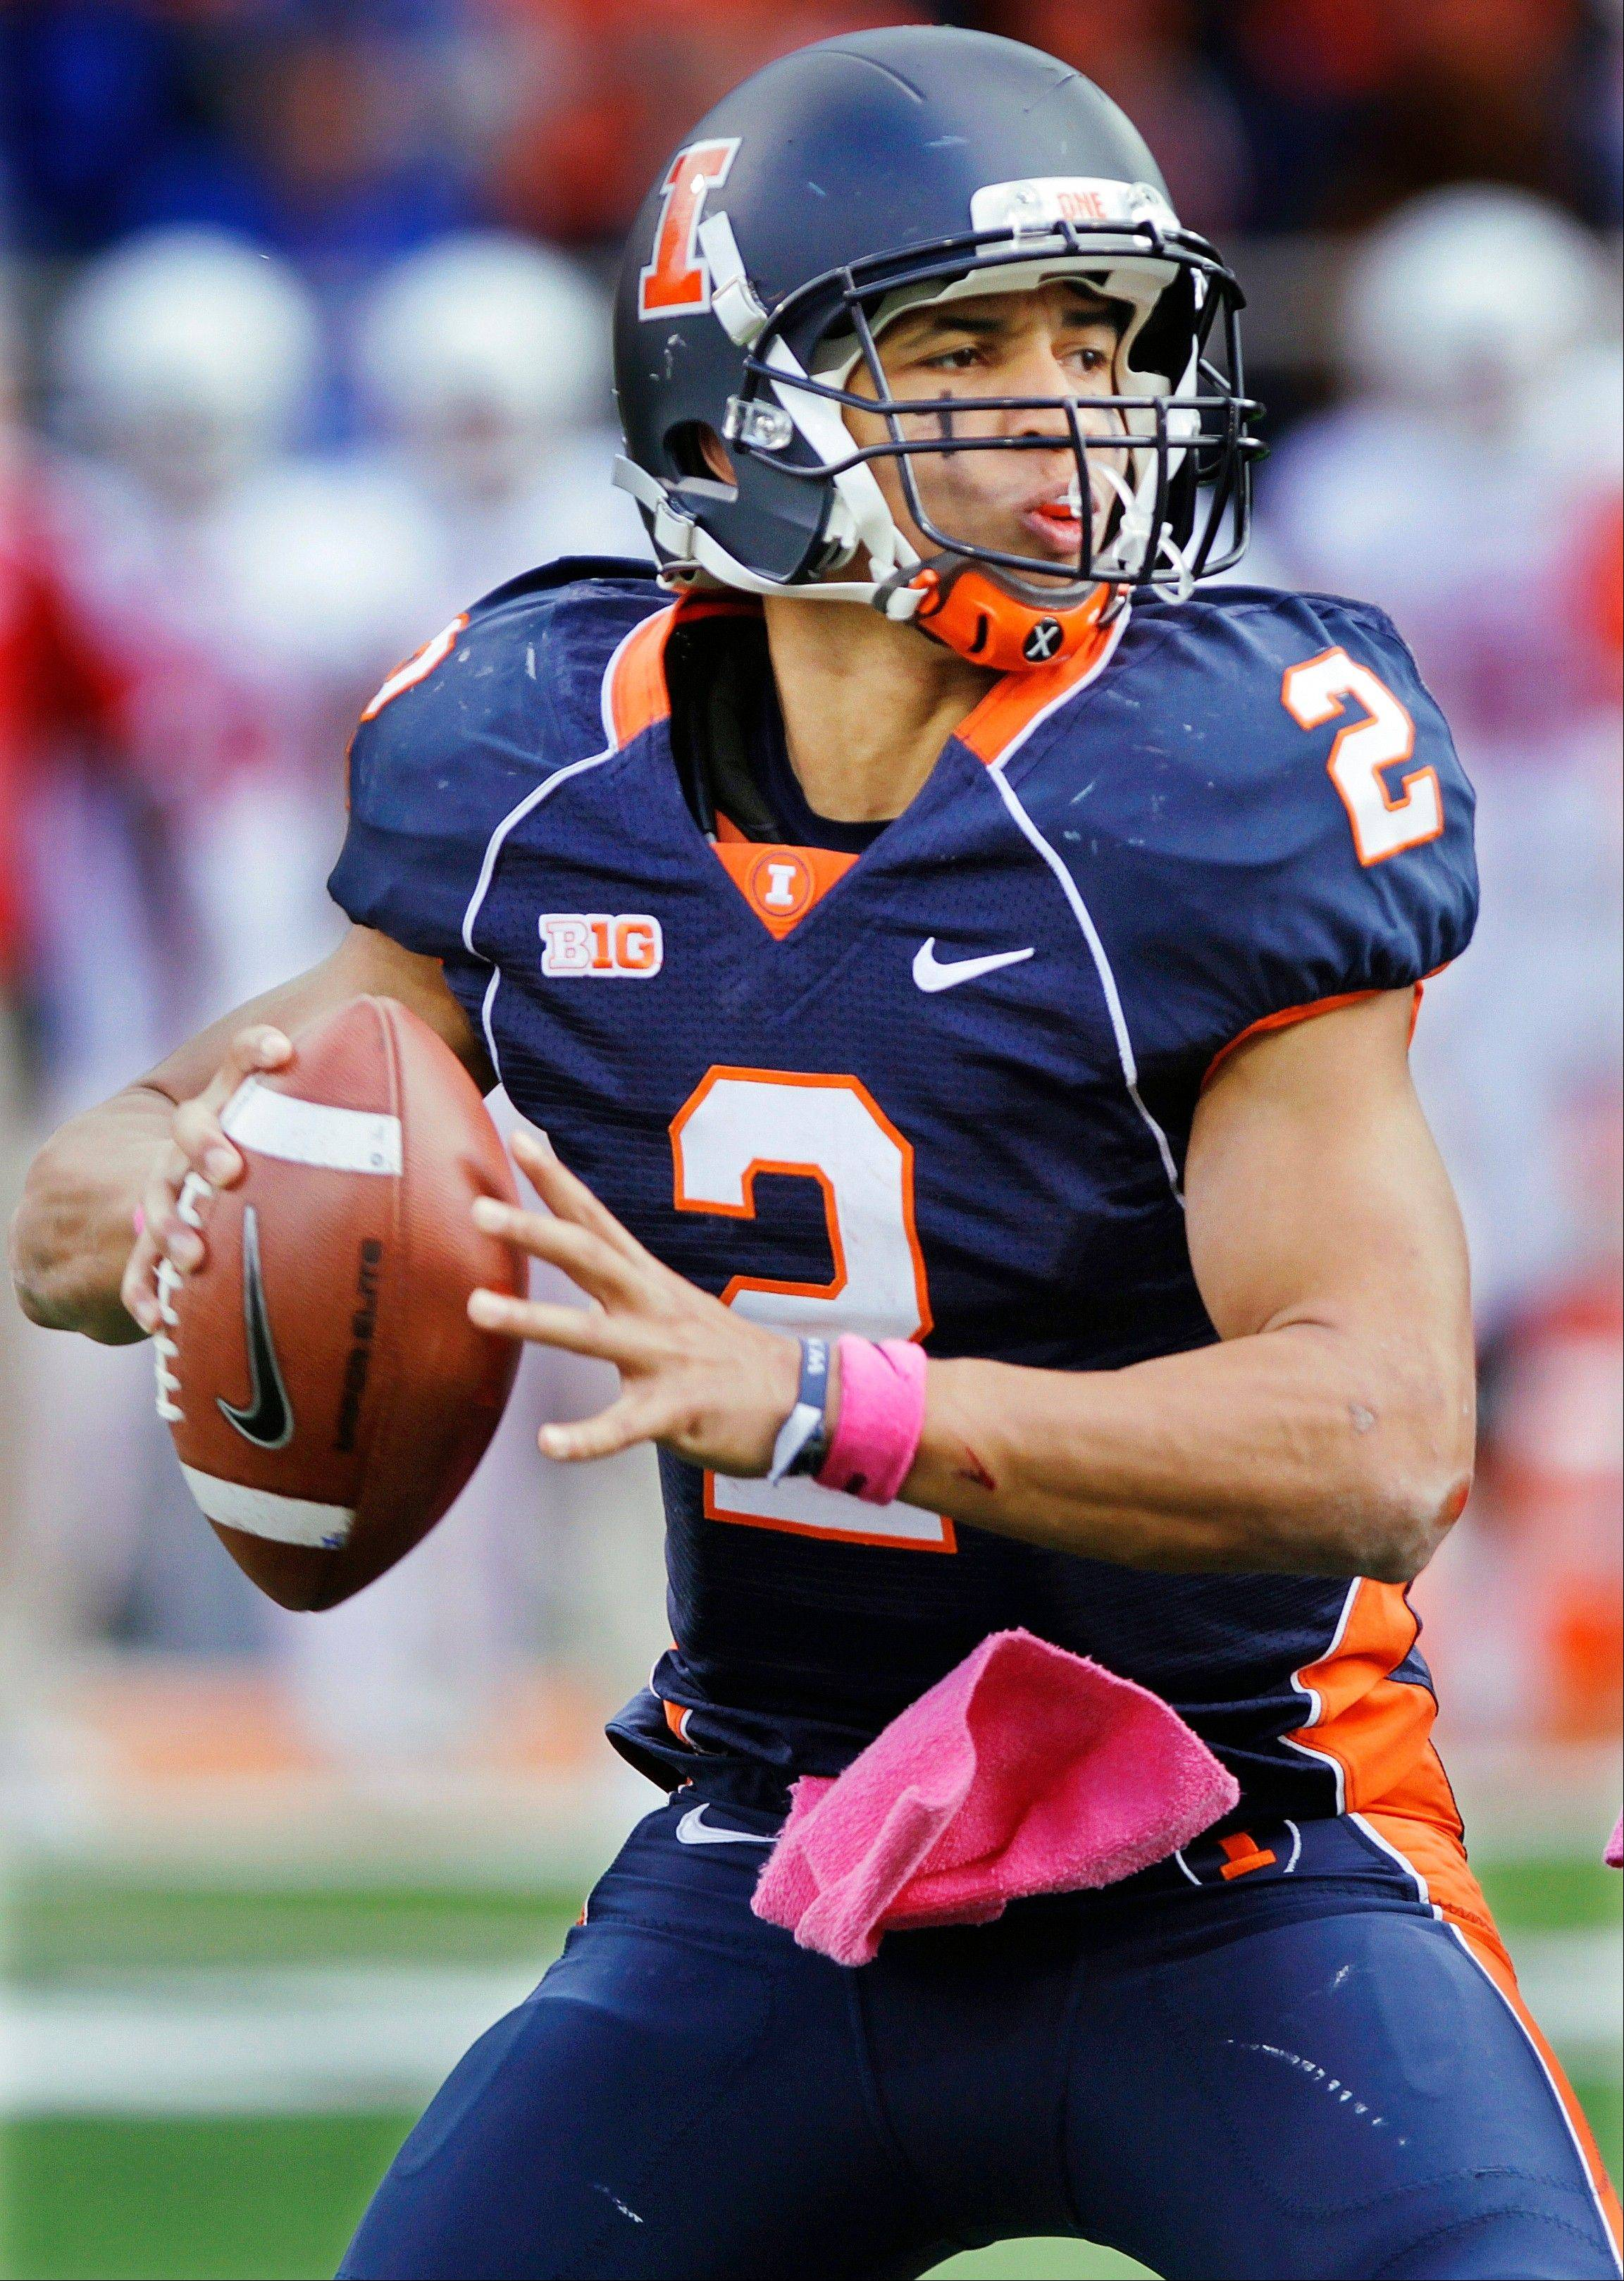 Illinois quarterback Nathan Scheelhaase drops back to pass Saturday during the second half against Indiana in Champaign. Illinois will try to break their five-game losing streak on the road Saturday against Ohio State.